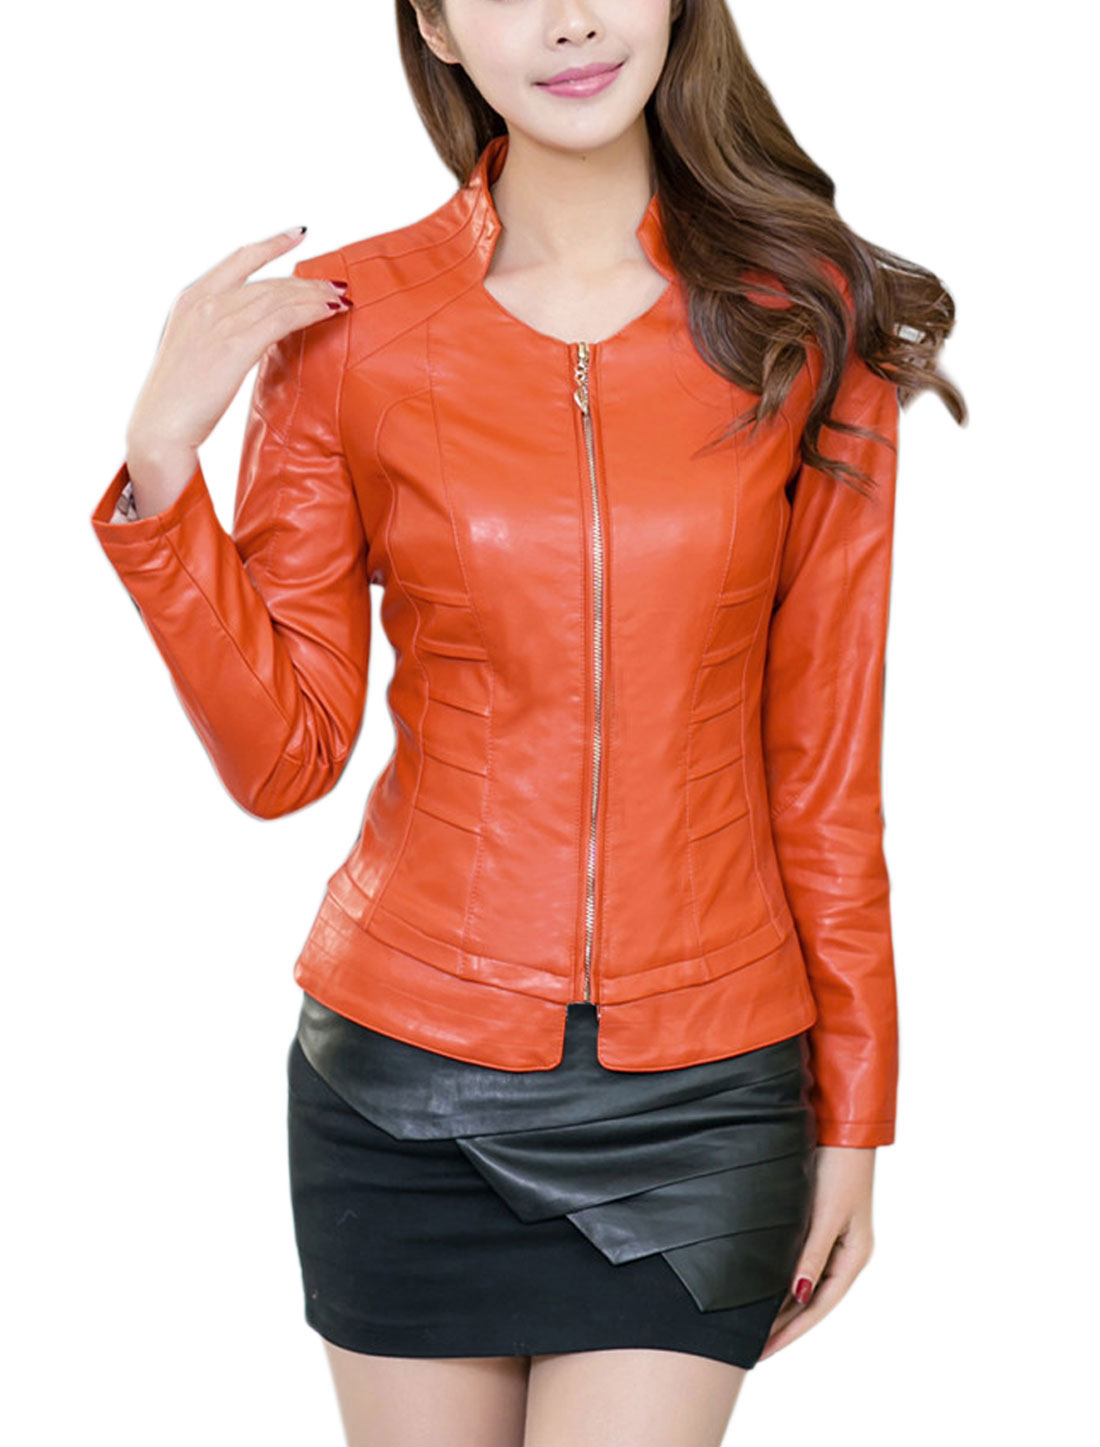 Lady Stand Collar Long-sleeved Stylish Design Imitation Leather Jacket Orange L